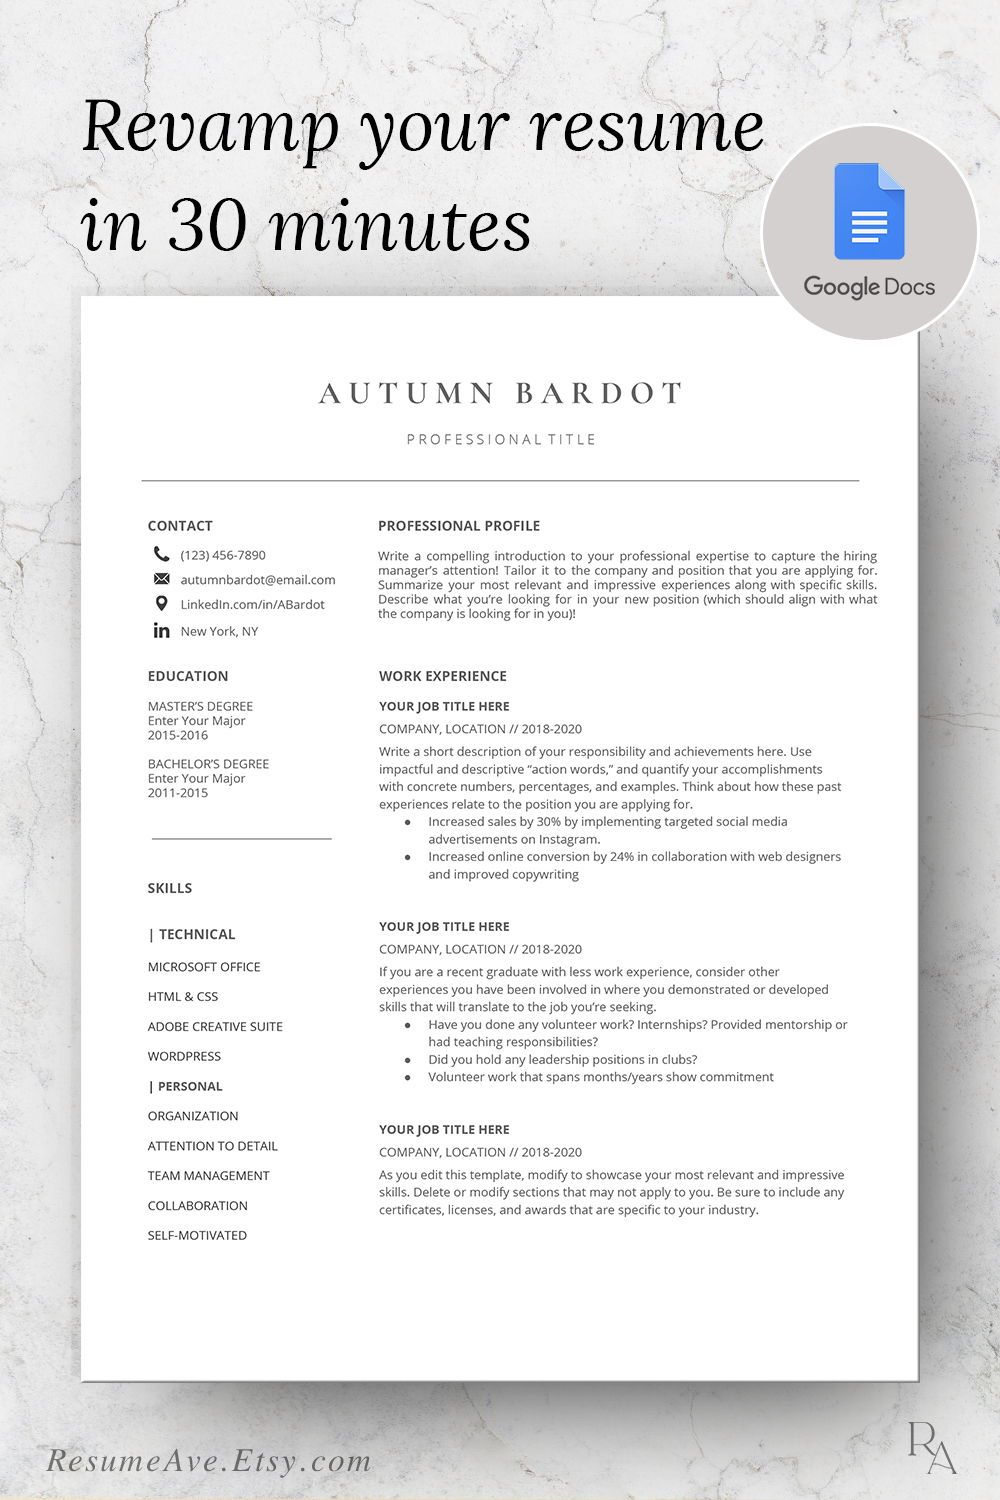 Professional Google Docs Resume Minimalistic Resume Template Etsy Cover Letter For Resume Nursing Resume Template Resume Template